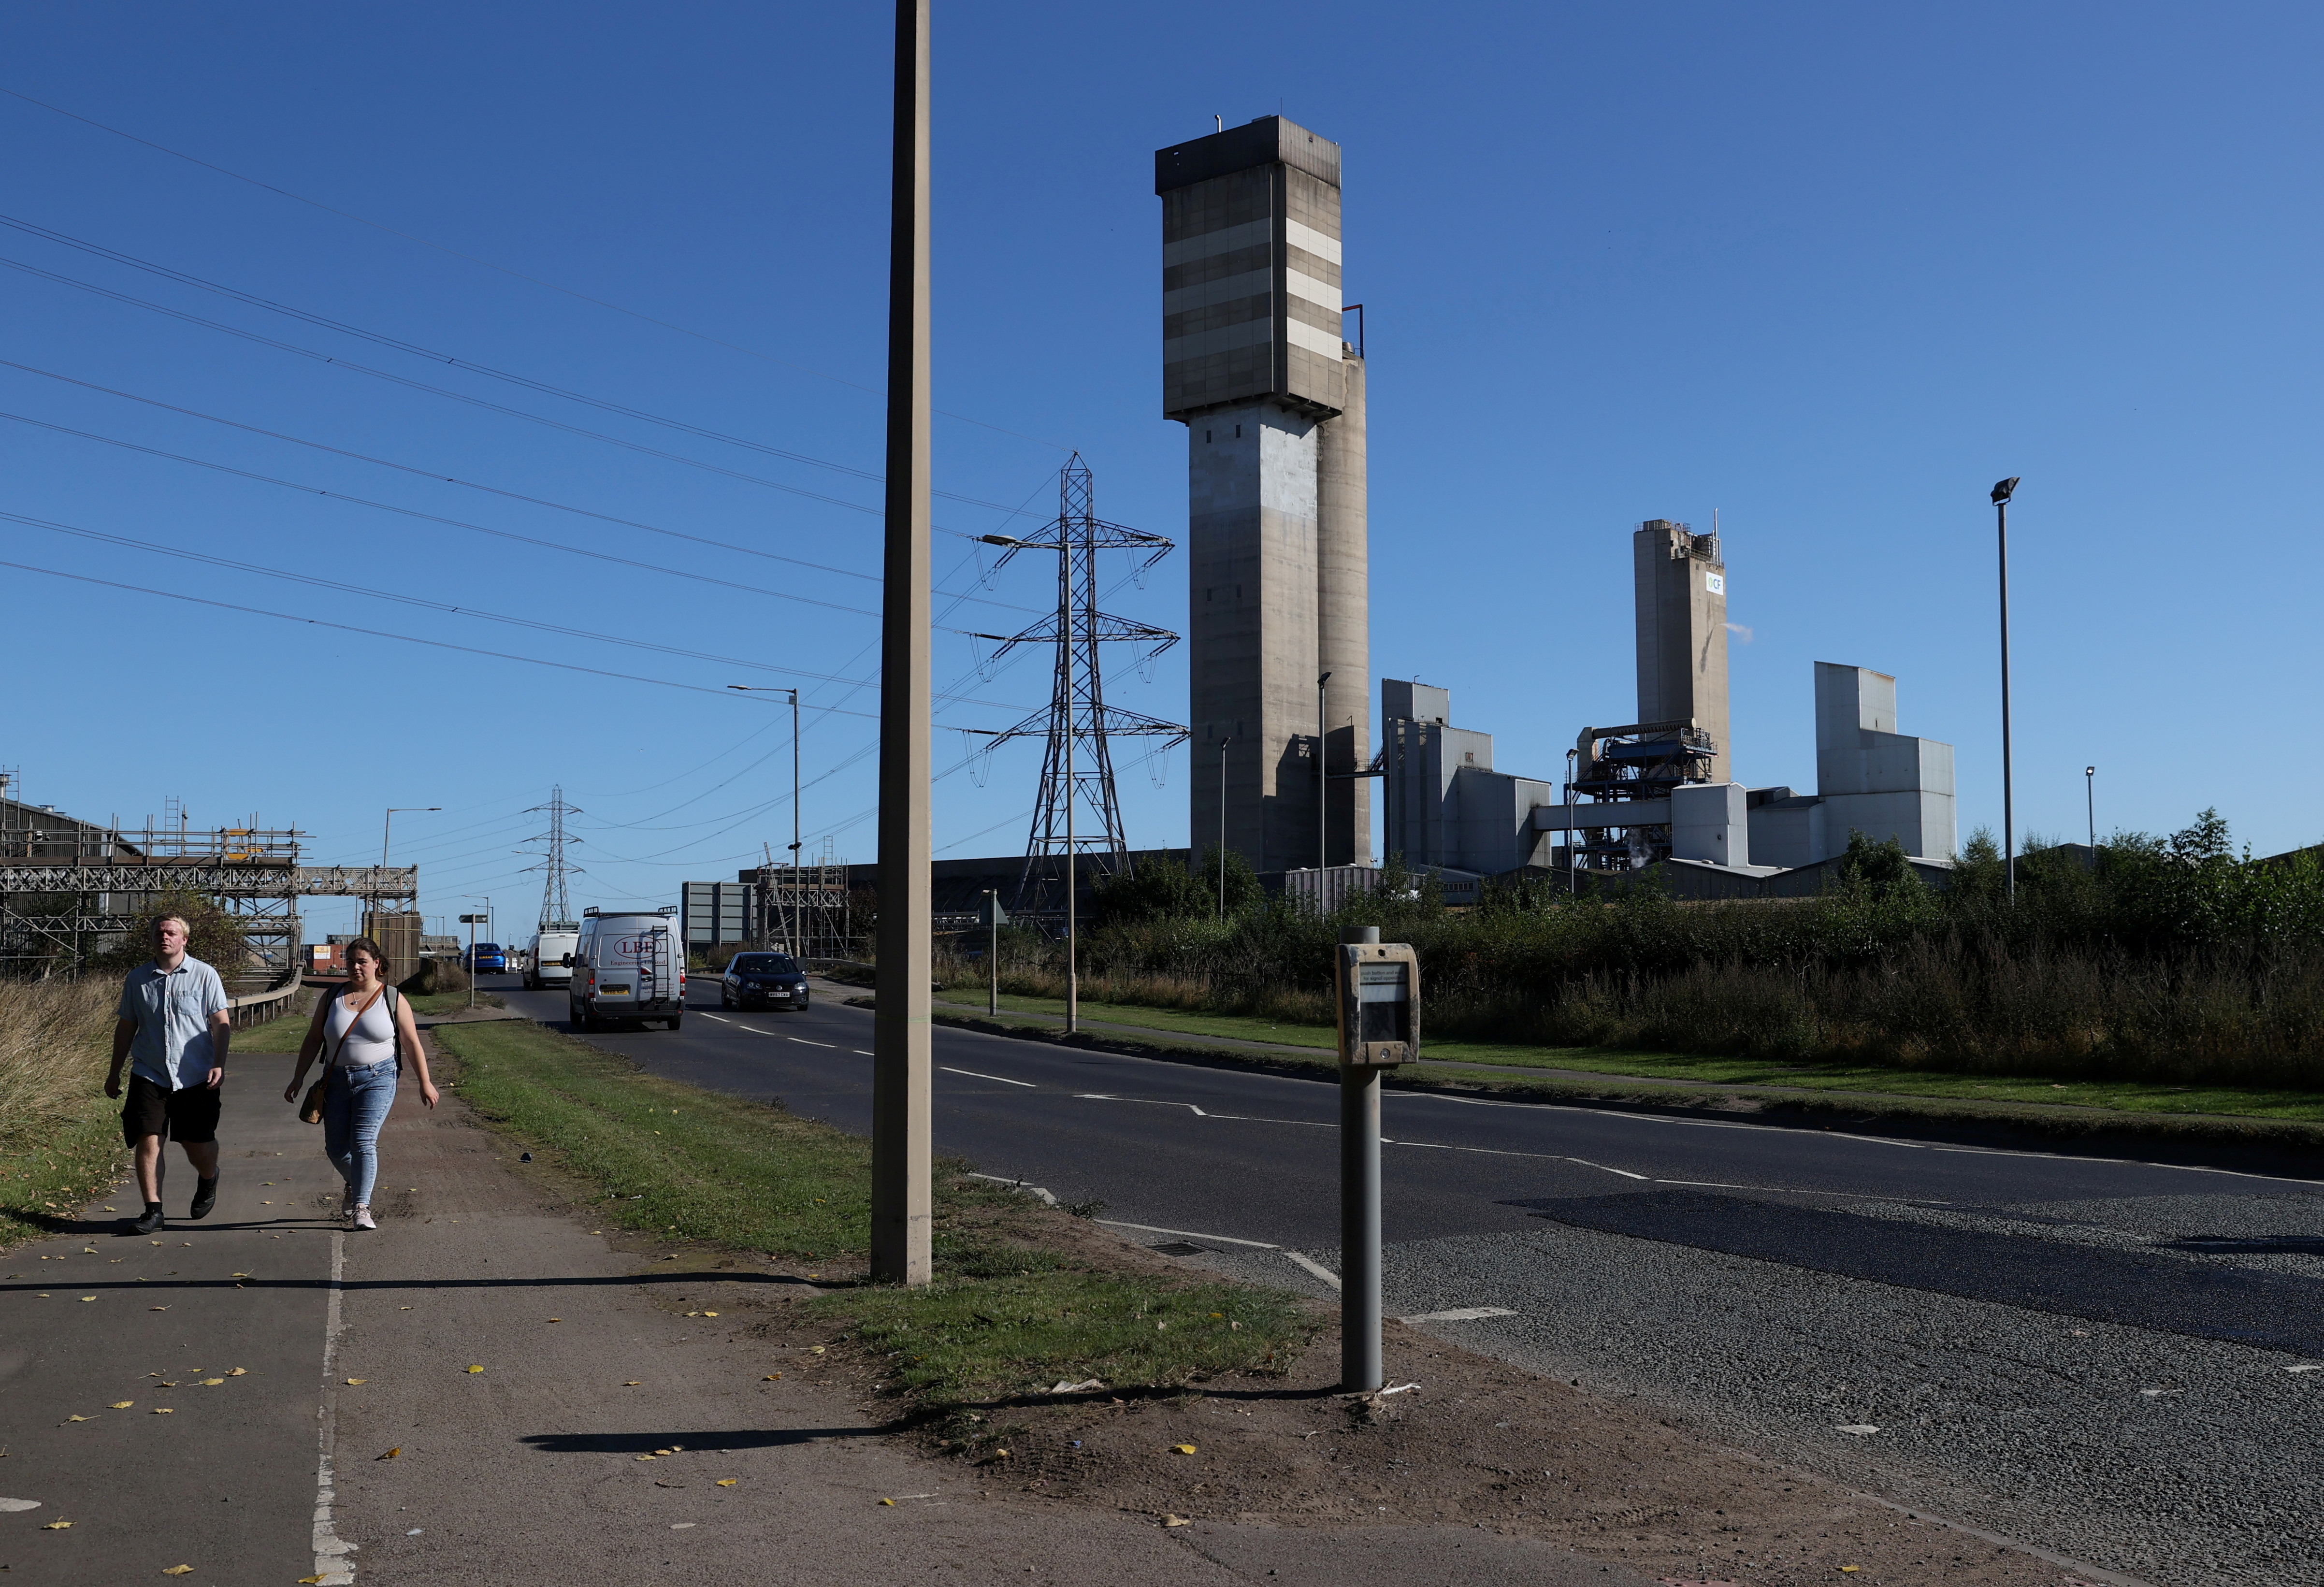 A general view of the CF industries plant in Billingham, Britain September 20, 2021. REUTERS/Lee Smith/File Photo